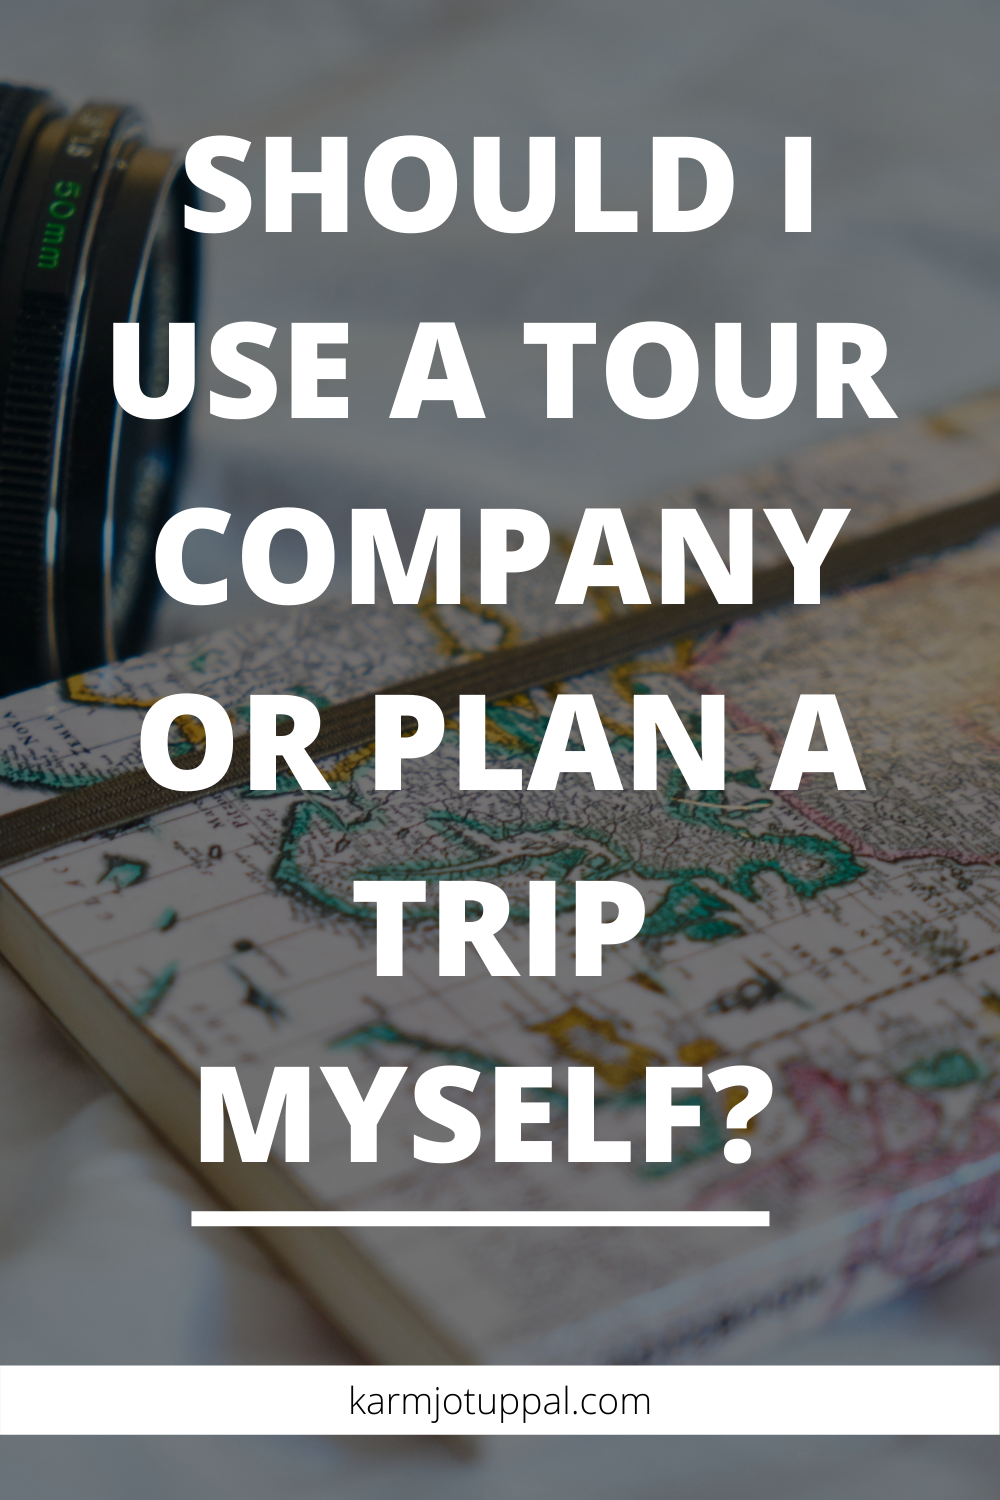 Tour Company vs Planning a trip yourself